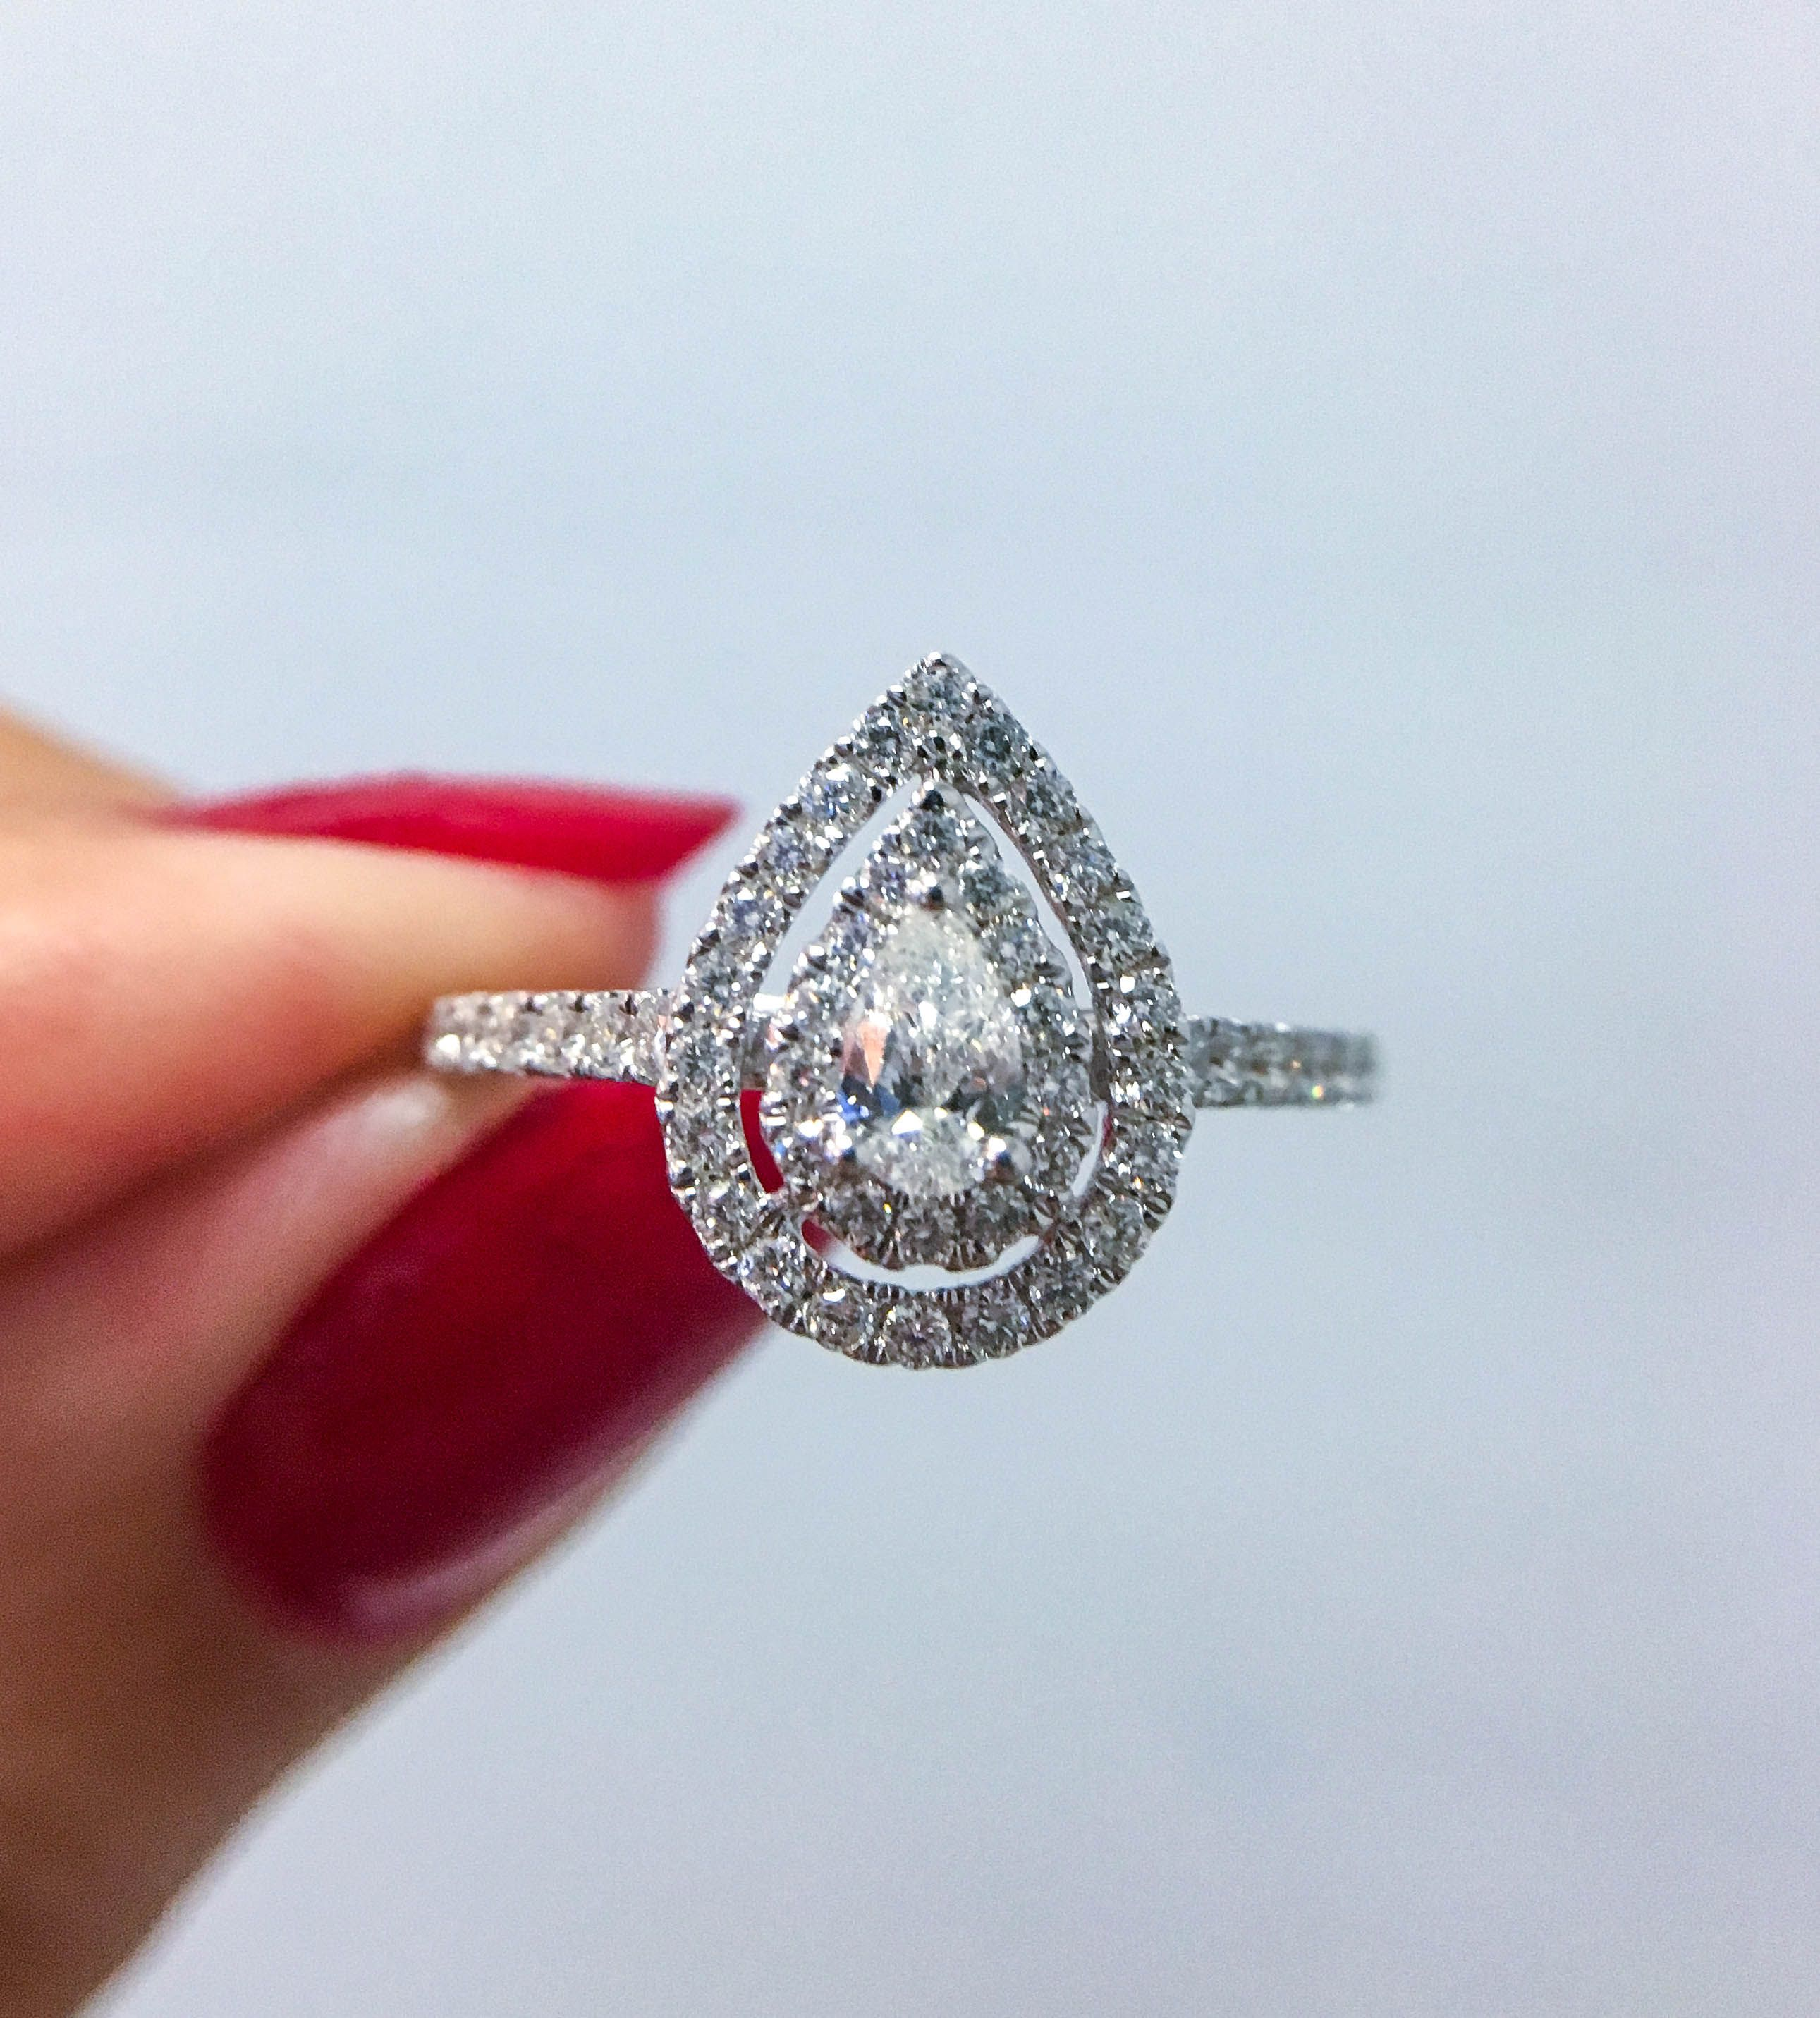 Ellaura Couture Pear Shaped Double Halo Diamond Engagement Ring 5 8ctw Black Diamond Engagement Ring Set Black Diamond Ring Engagement White Gold Sapphire Engagement Rings